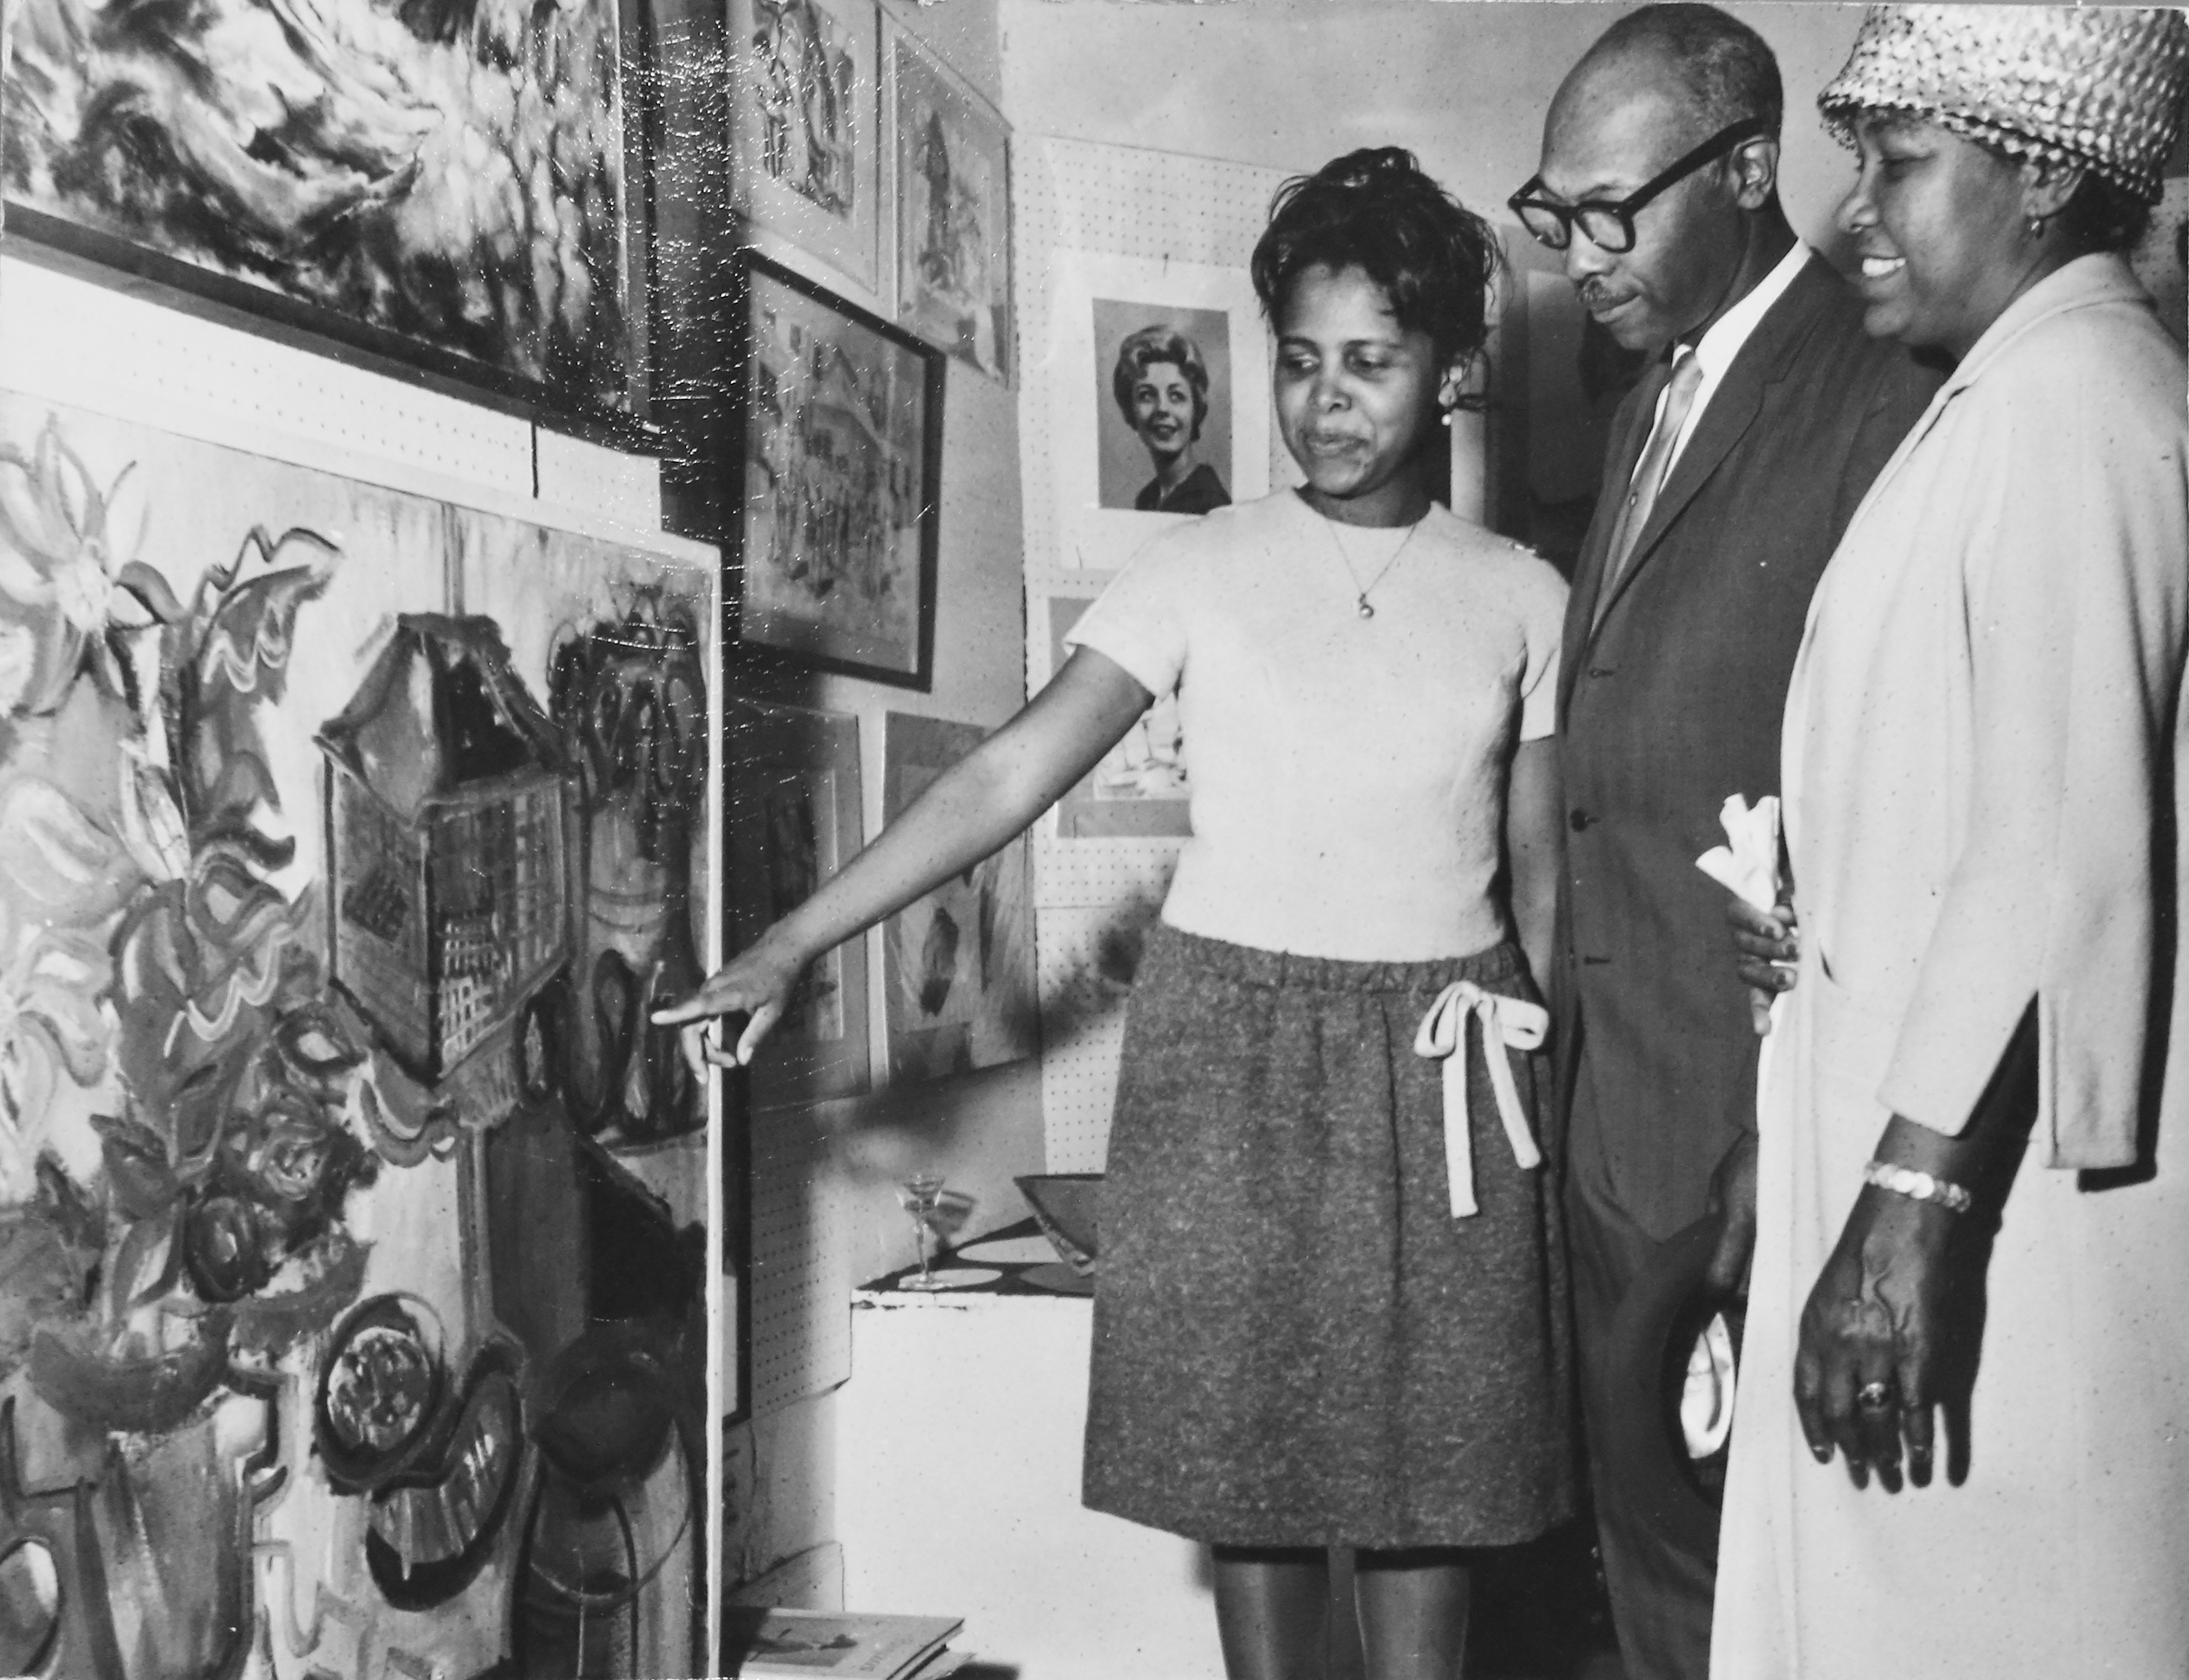 Shirley Woodson sharing her work with parents, Claude and Celia Woodson, at Detroit's Arts Extended Gallery in the early 1960s. Photo by James D. Wilson, courtesy Shirley Woodson.